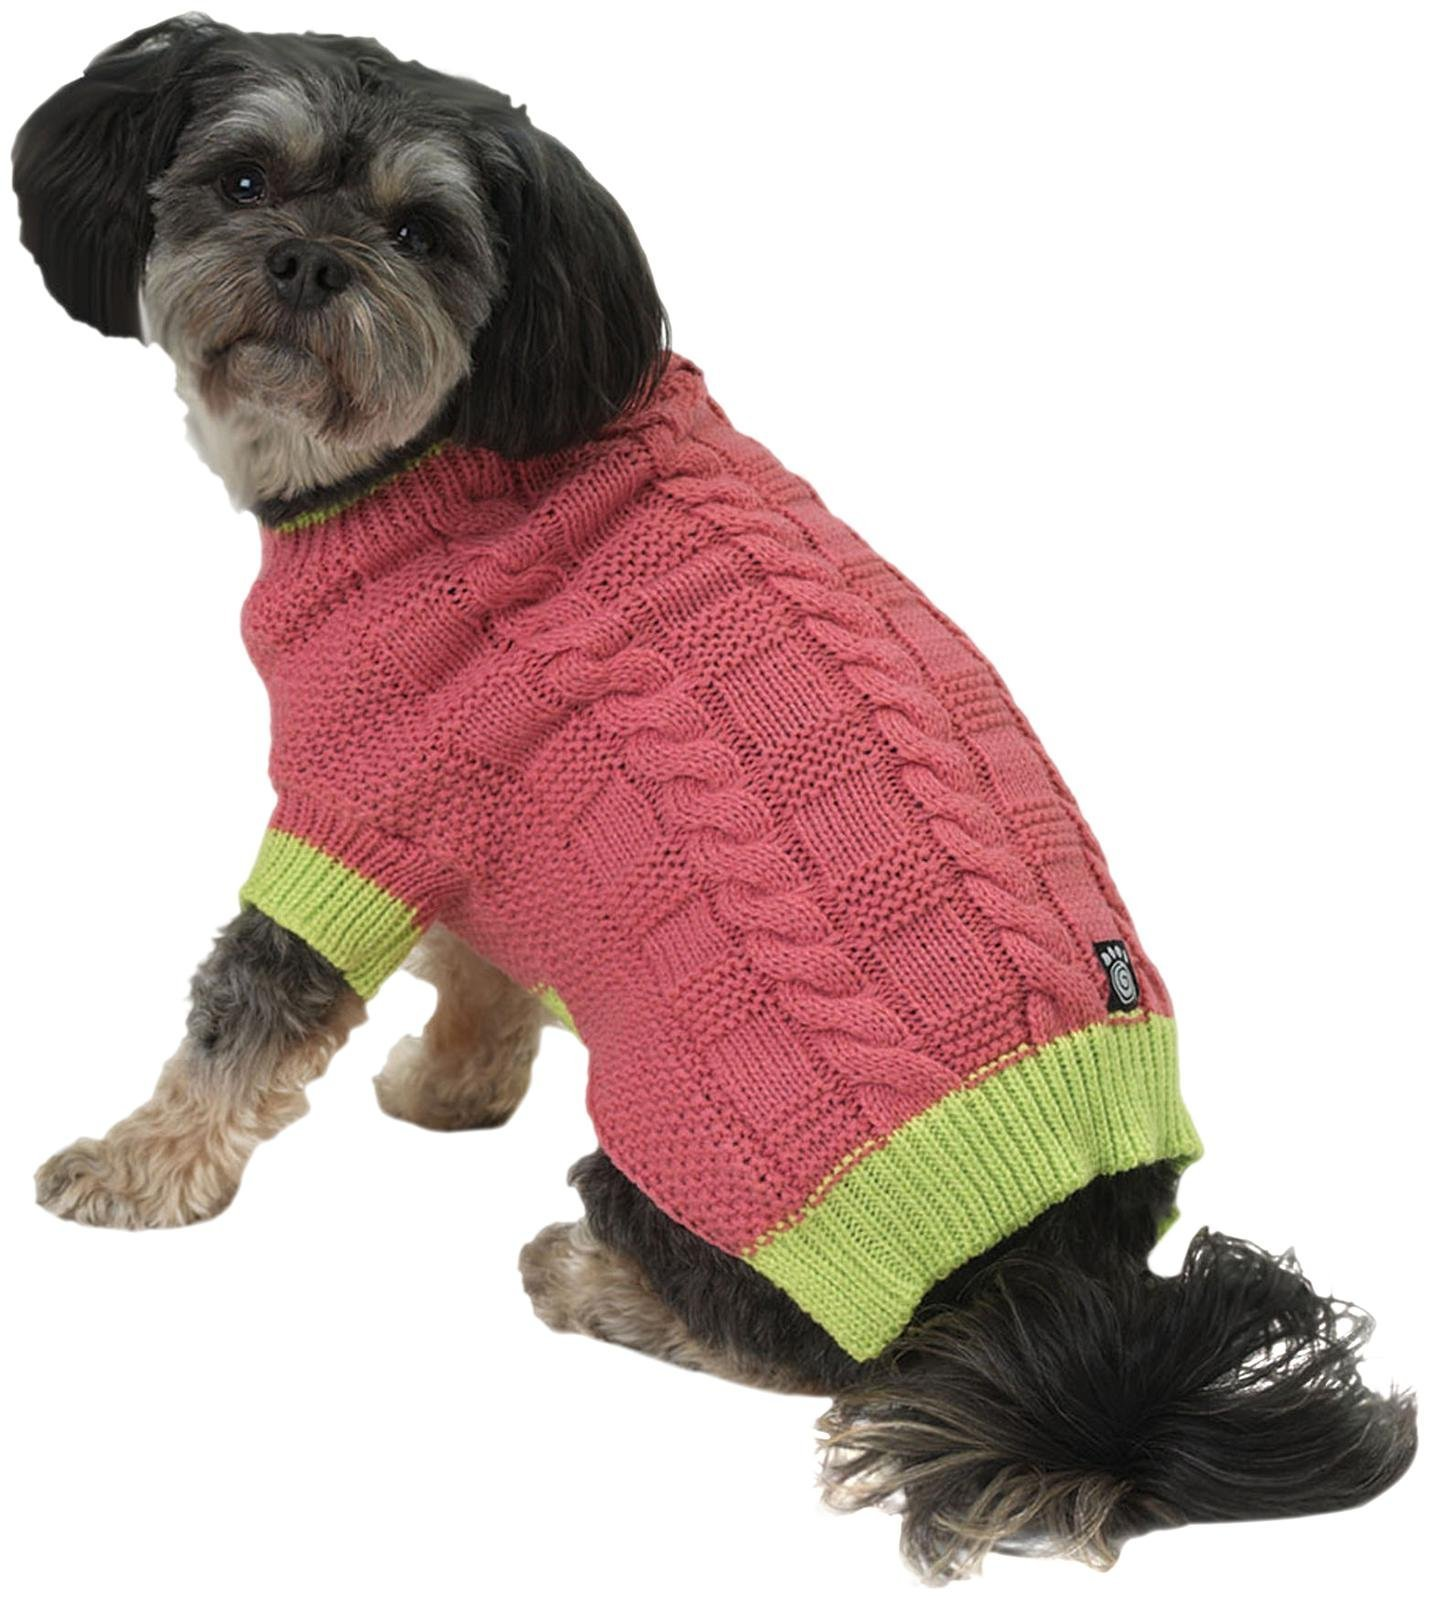 Petrageous Designs Cody'S Chunky Cable Sweater - Pink/Lime - X-Small